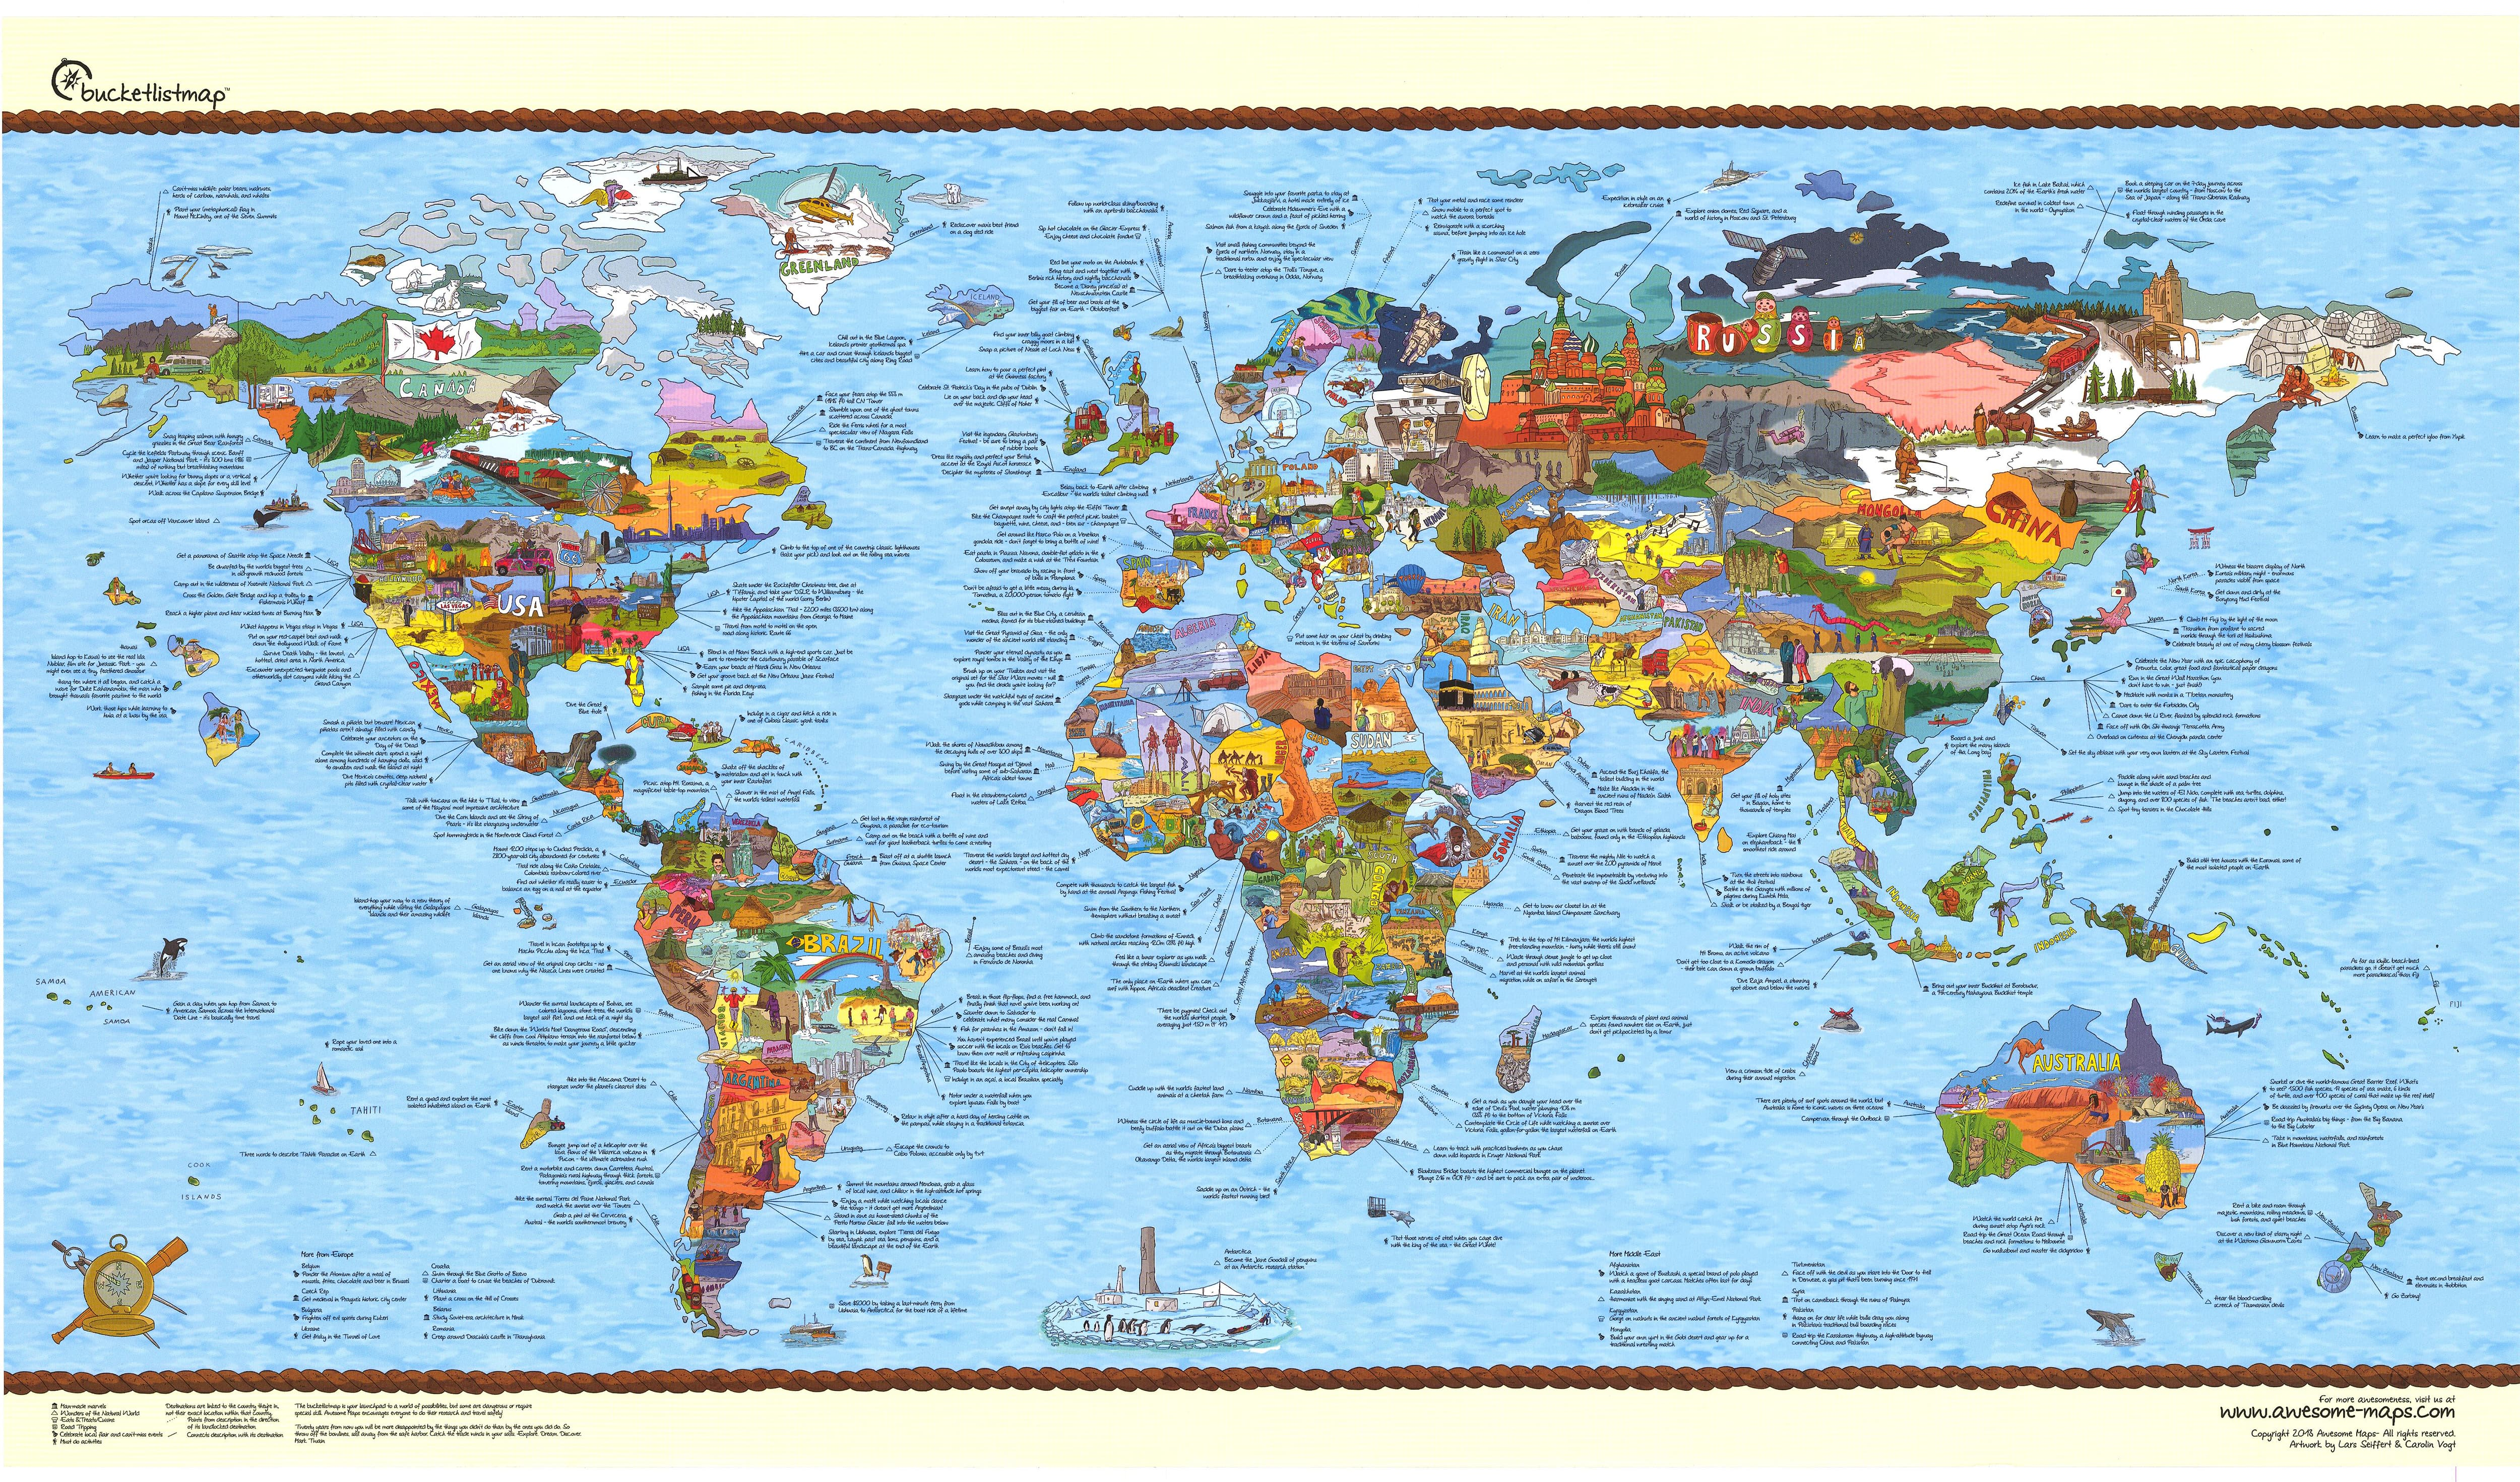 See Map Of The World.World Bucket List Re Writable Map 975 X 560mm